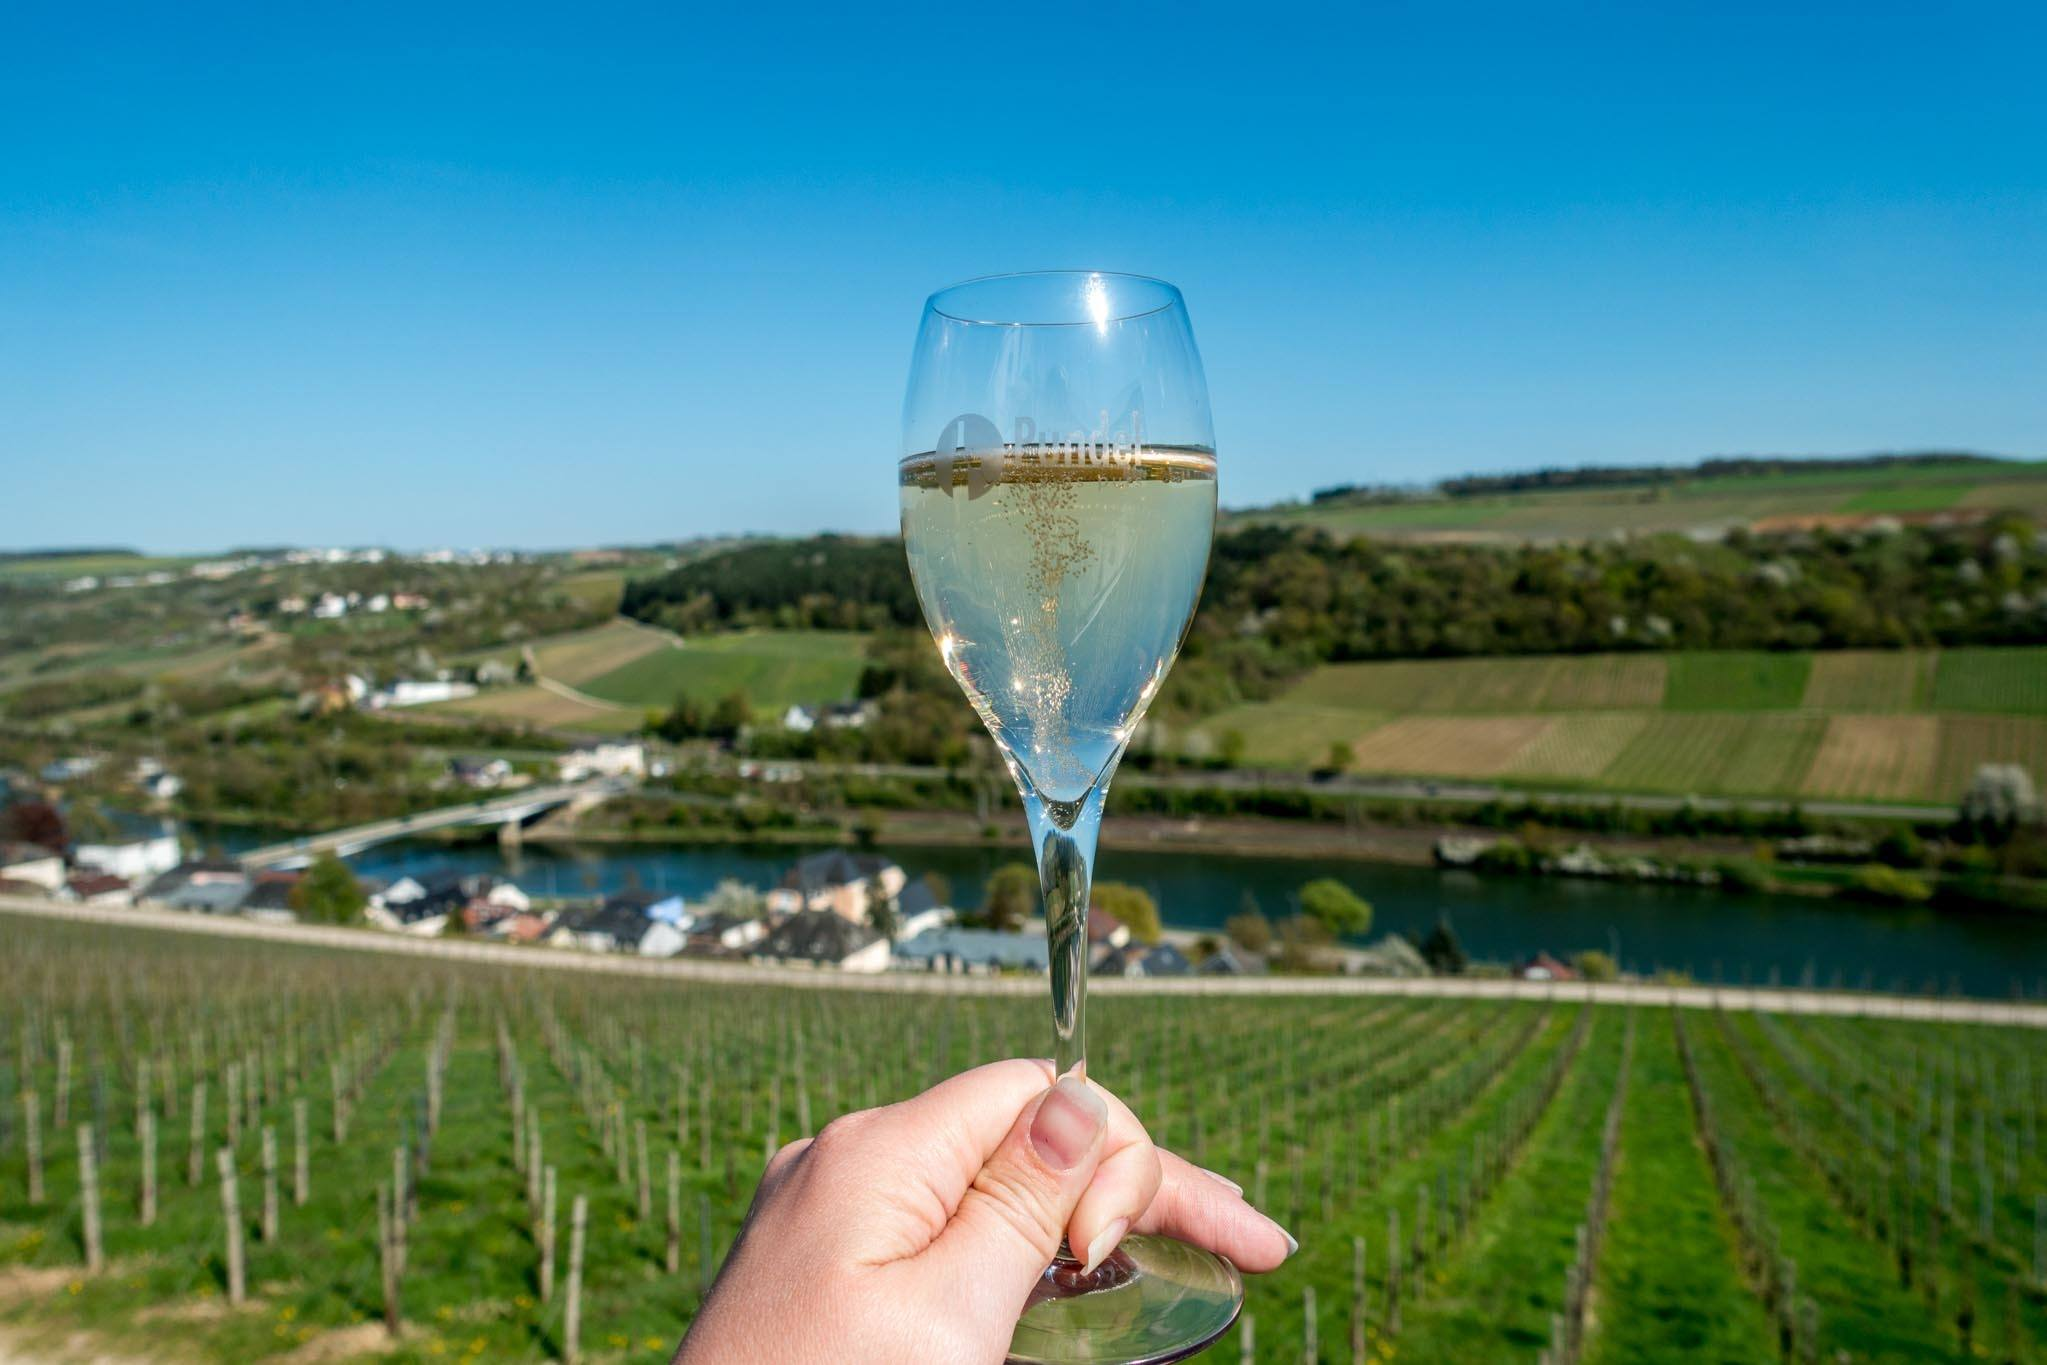 Wine tasting along the Moselle River is one of the most fun Luxembourg activities.